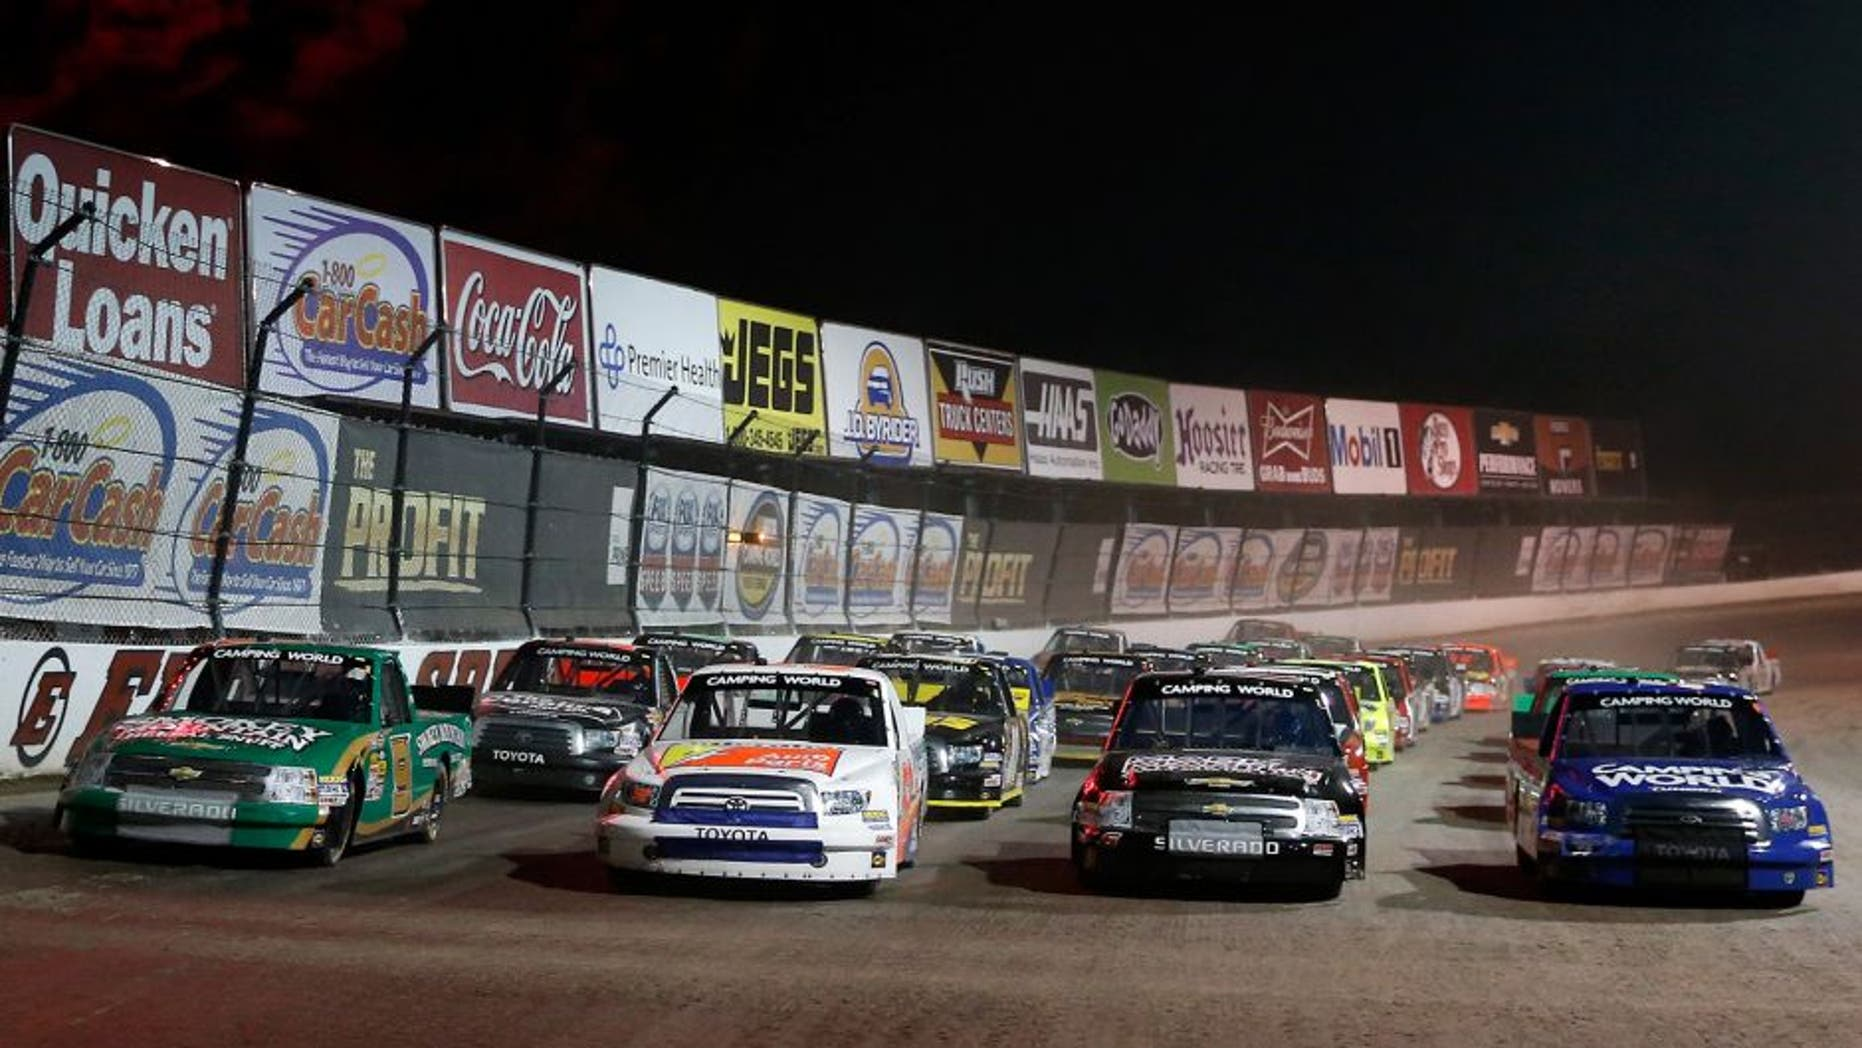 ROSSBURG, OH - JULY 24: Ken Schrader, driver of the #52 Federated Auto Parts Toyota, leads the field as they line up four wide during the NASCAR Camping World Truck Series inaugural CarCash Mudsummer Classic at Eldora Speedway on July 24, 2013 in Rossburg, Ohio. (Photo by Chris Graythen/NASCAR via Getty Images)